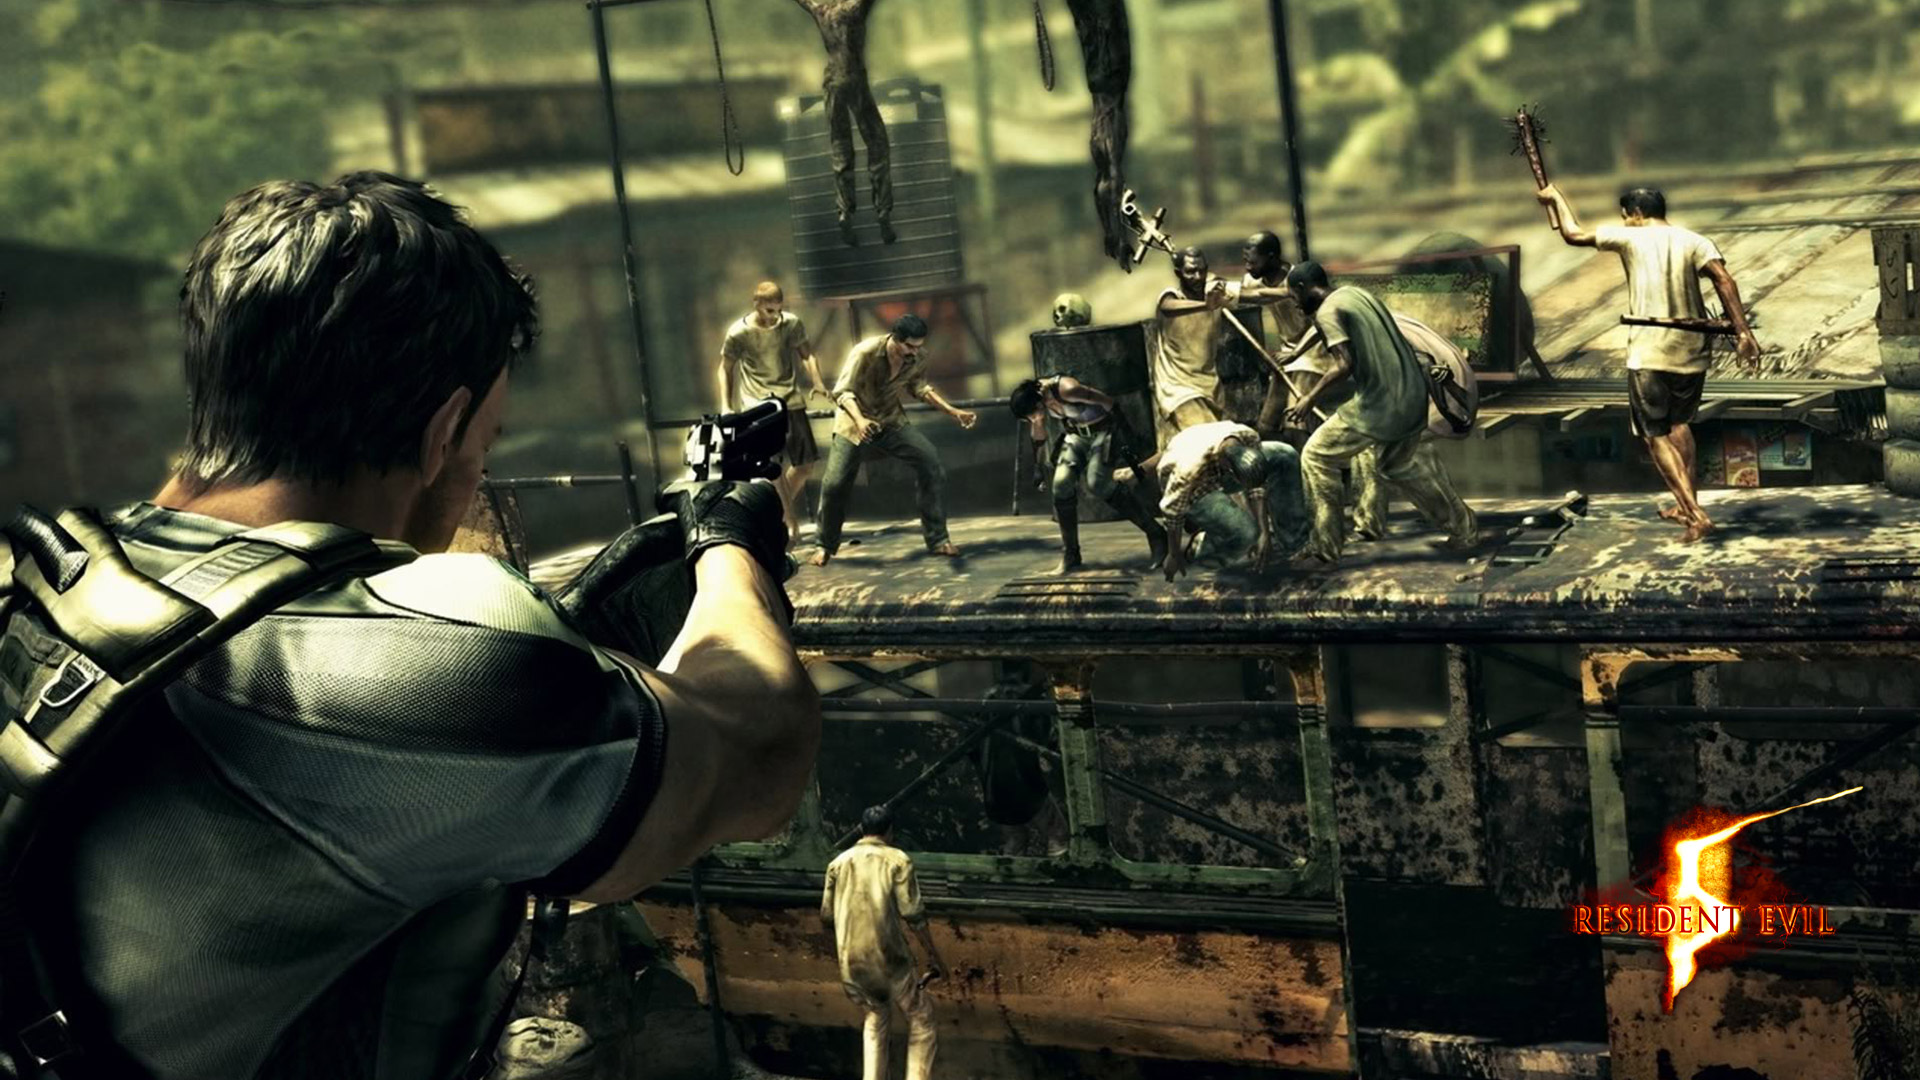 Free Resident Evil 5 Wallpaper in 1920x1080